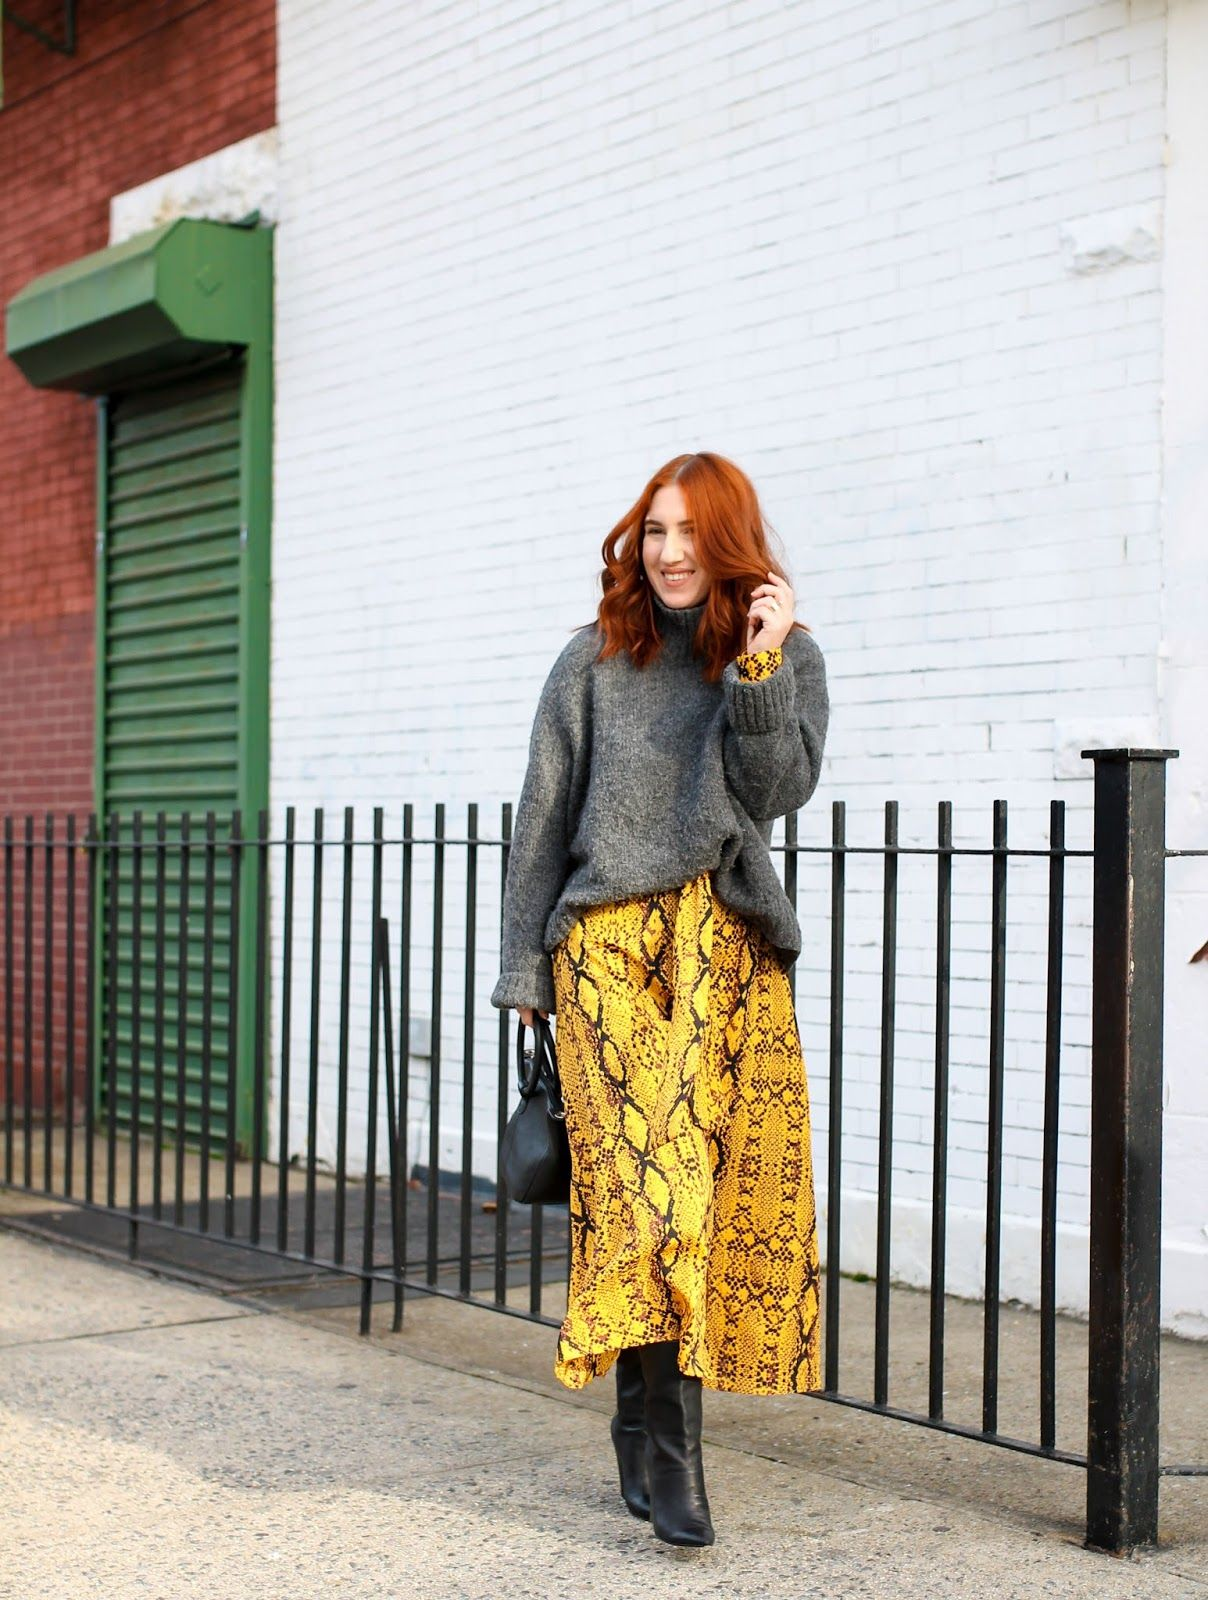 Easy Winter Layering Chunky Oversized Sweater And Asos Snakeskin Maxi Dress Layering Outfits Chunky Oversized Sweater Maxi Dresses Fall [ 1600 x 1208 Pixel ]